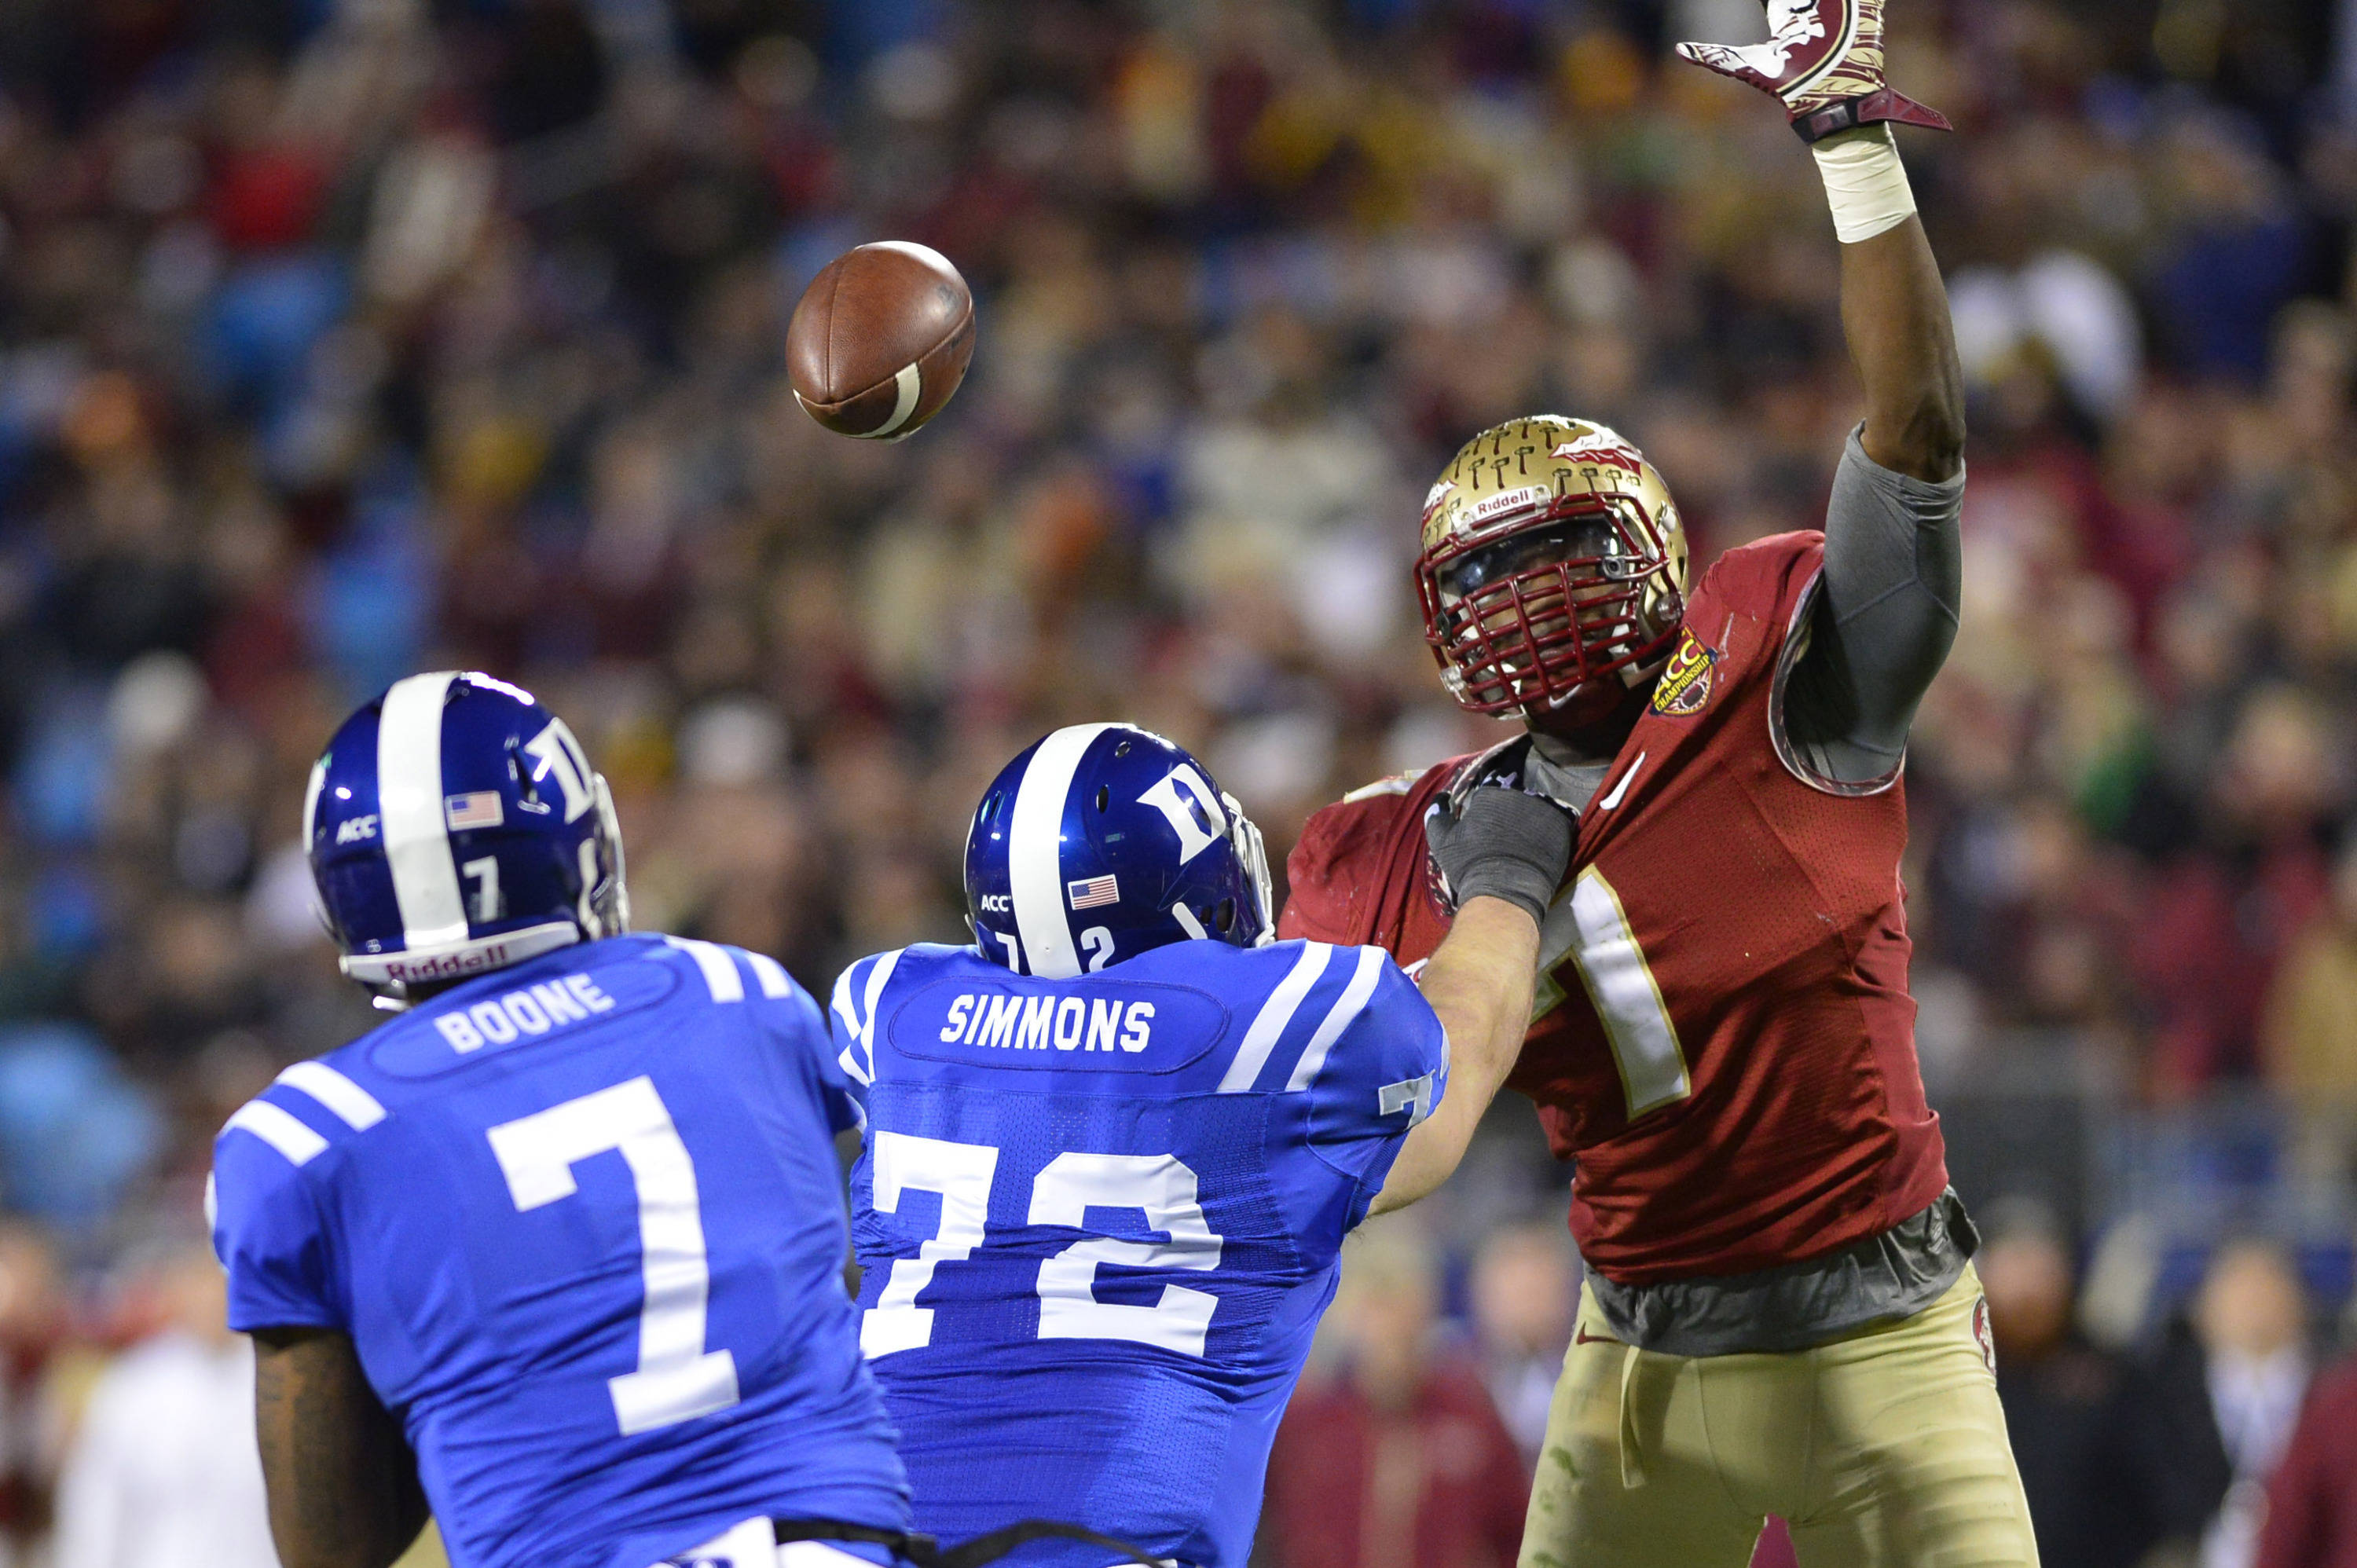 Dec 7, 2013; Charlotte, NC, USA; Duke Blue Devils quarterback Anthony Boone (7) passes the ball as offensive tackle Perry Simmons (72) blocks and Florida State Seminoles linebacker Christian Jones (7) pressures in the third quarter at Bank of America Stadium. Mandatory Credit: Bob Donnan-USA TODAY Sports